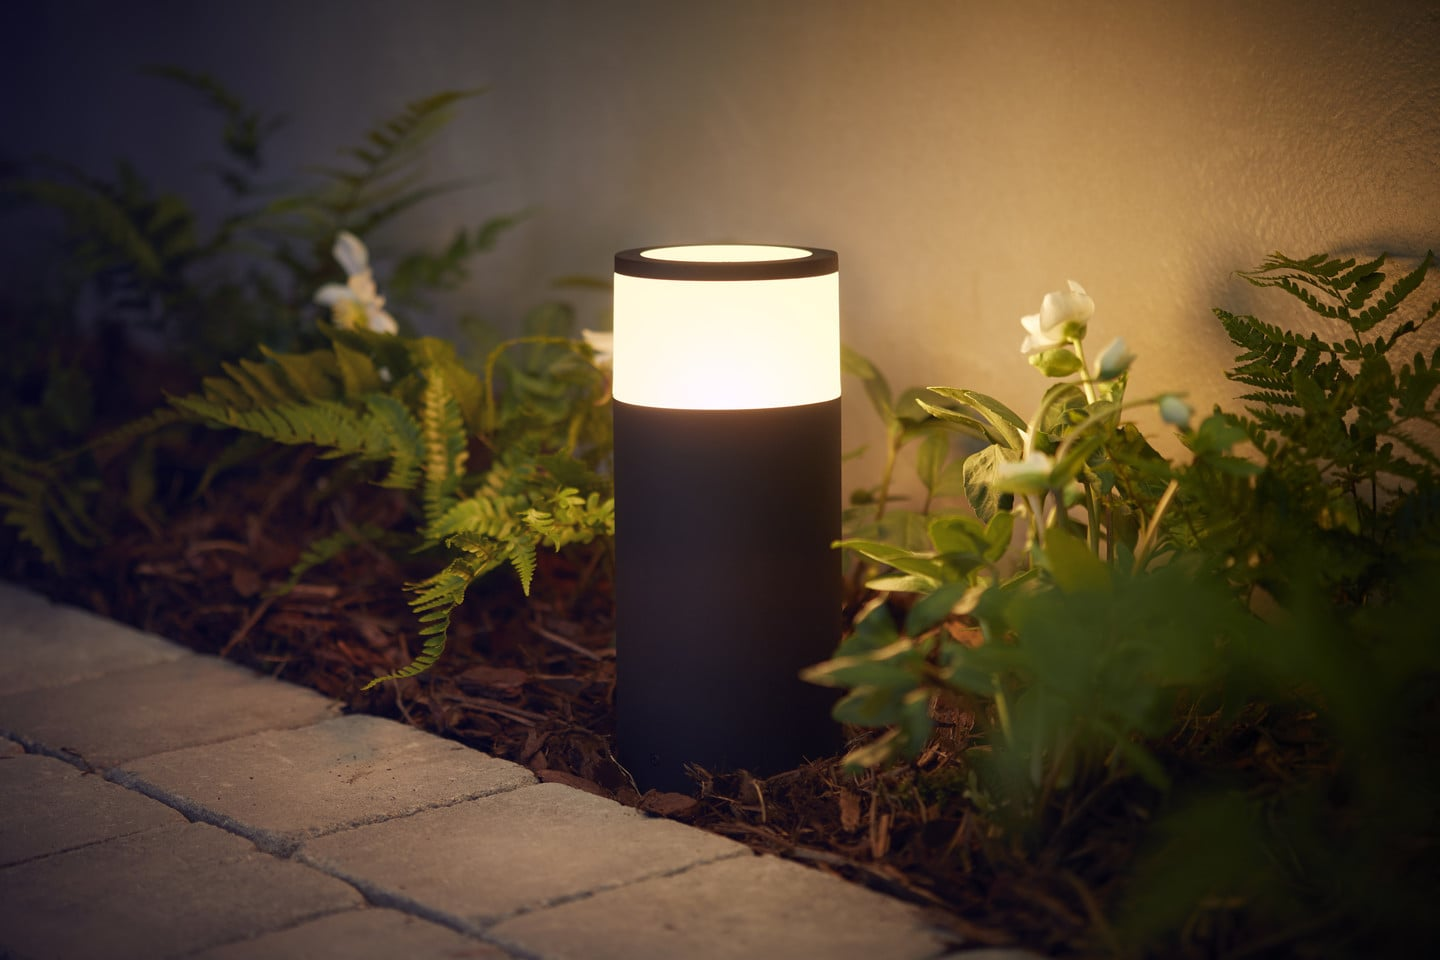 Philips Hue Outdoor Lights Will Be Released In July